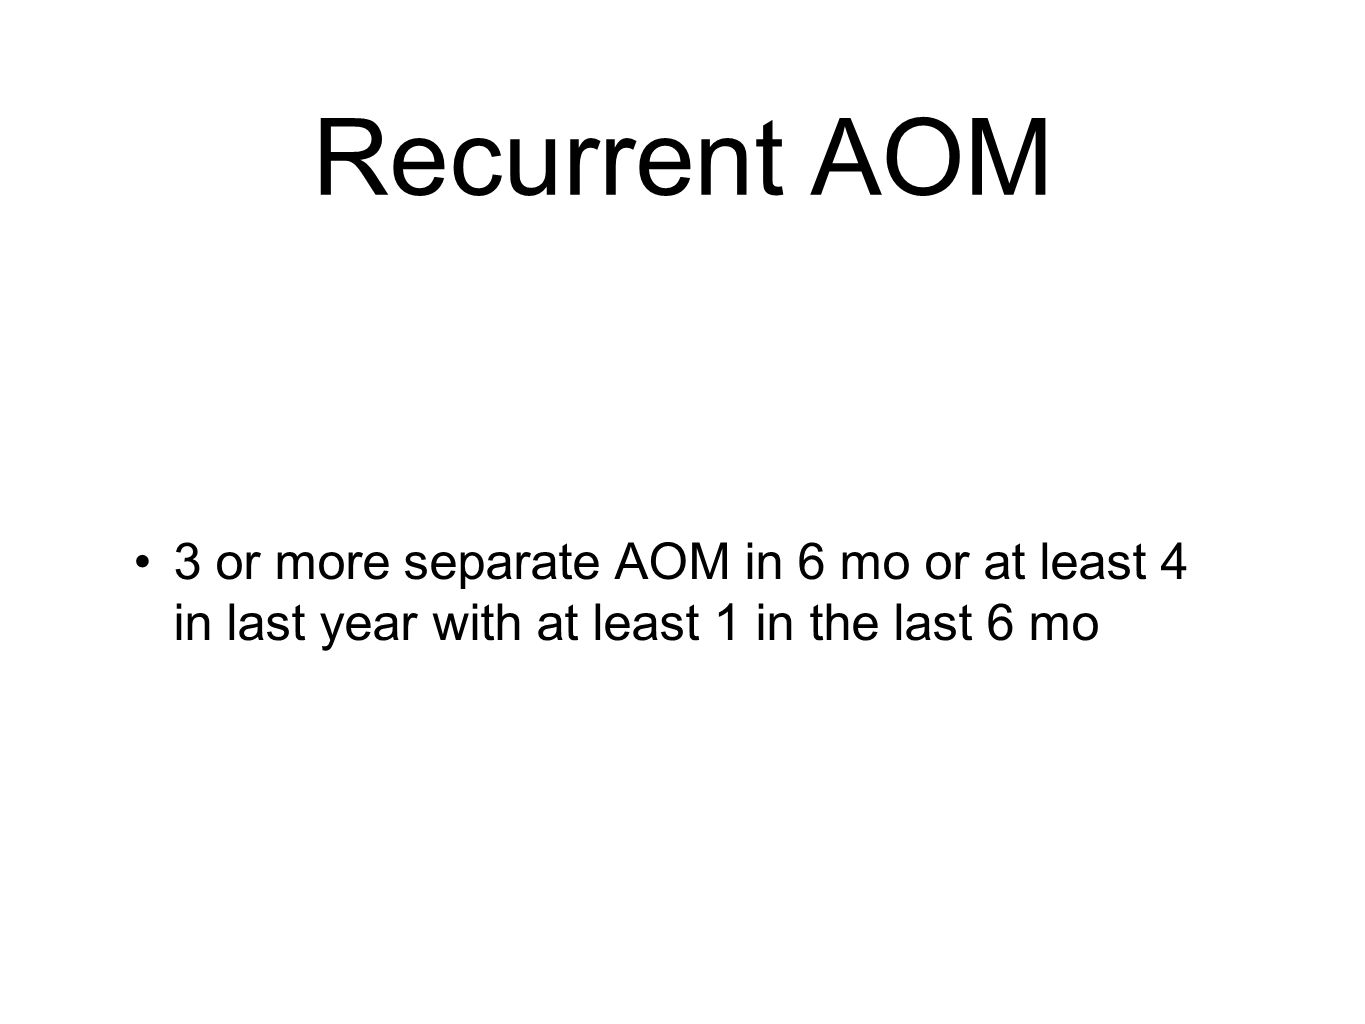 Recurrent AOM 3 or more separate AOM in 6 mo or at least 4 in last year with at least 1 in the last 6 mo.